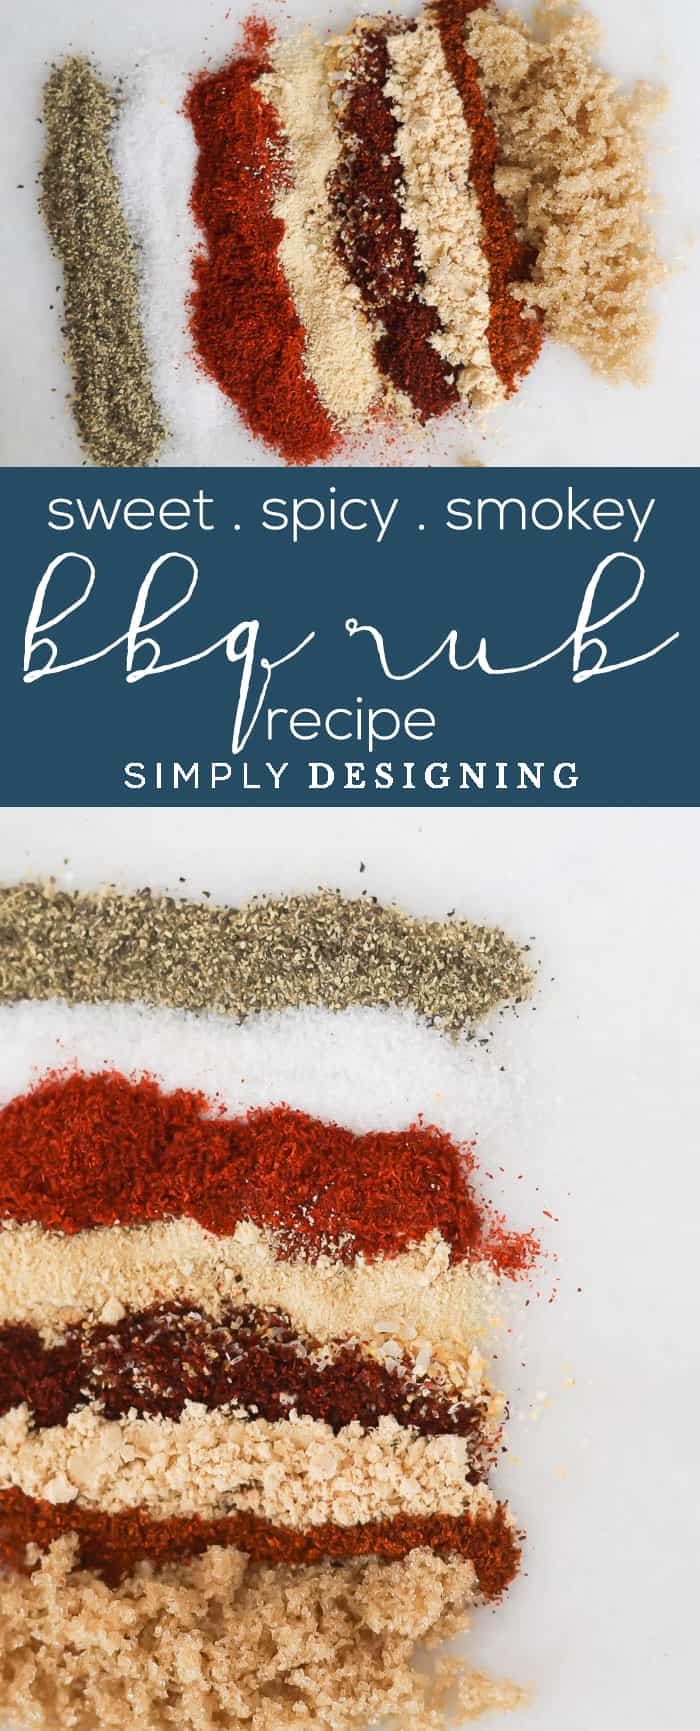 The BEST Sweet Spicy and Smokey BBQ Rub Recipe - an easy to make BBQ Rub recipe that will give your meat a delicious BBQ flavor